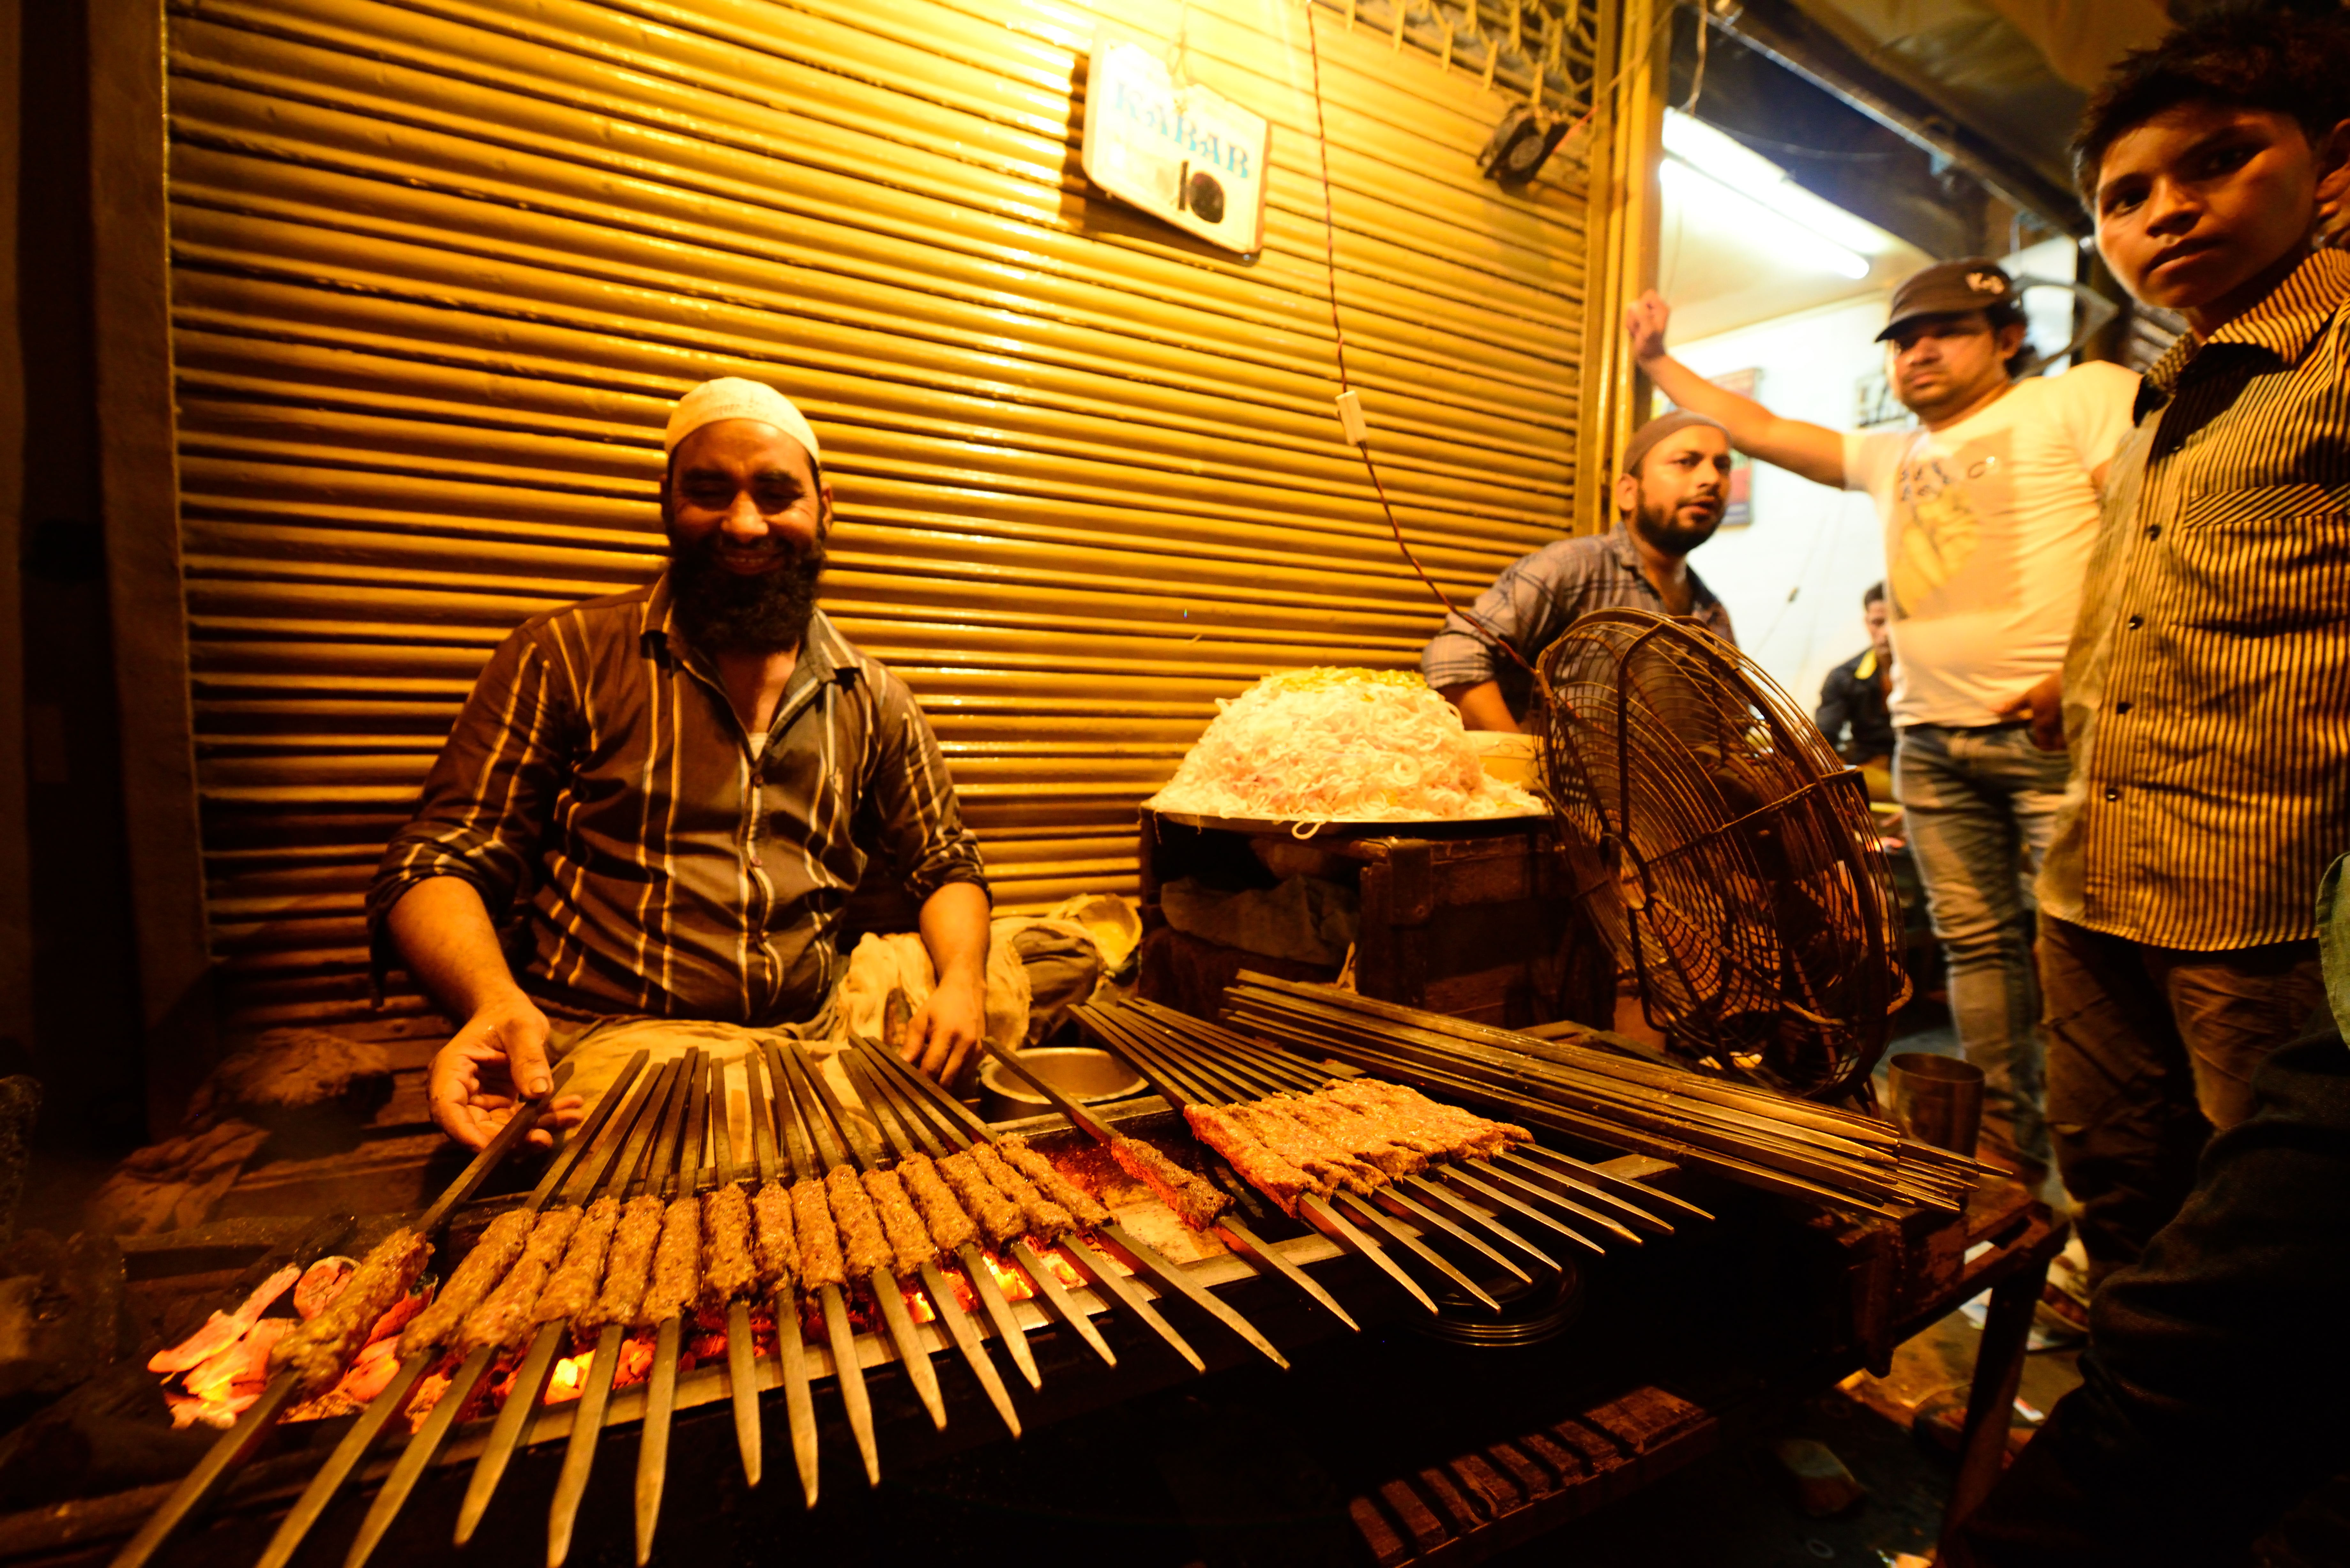 The famous beef-kebab stall at Chandni Chowk, in New Delhi, on Aug. 20, 2014